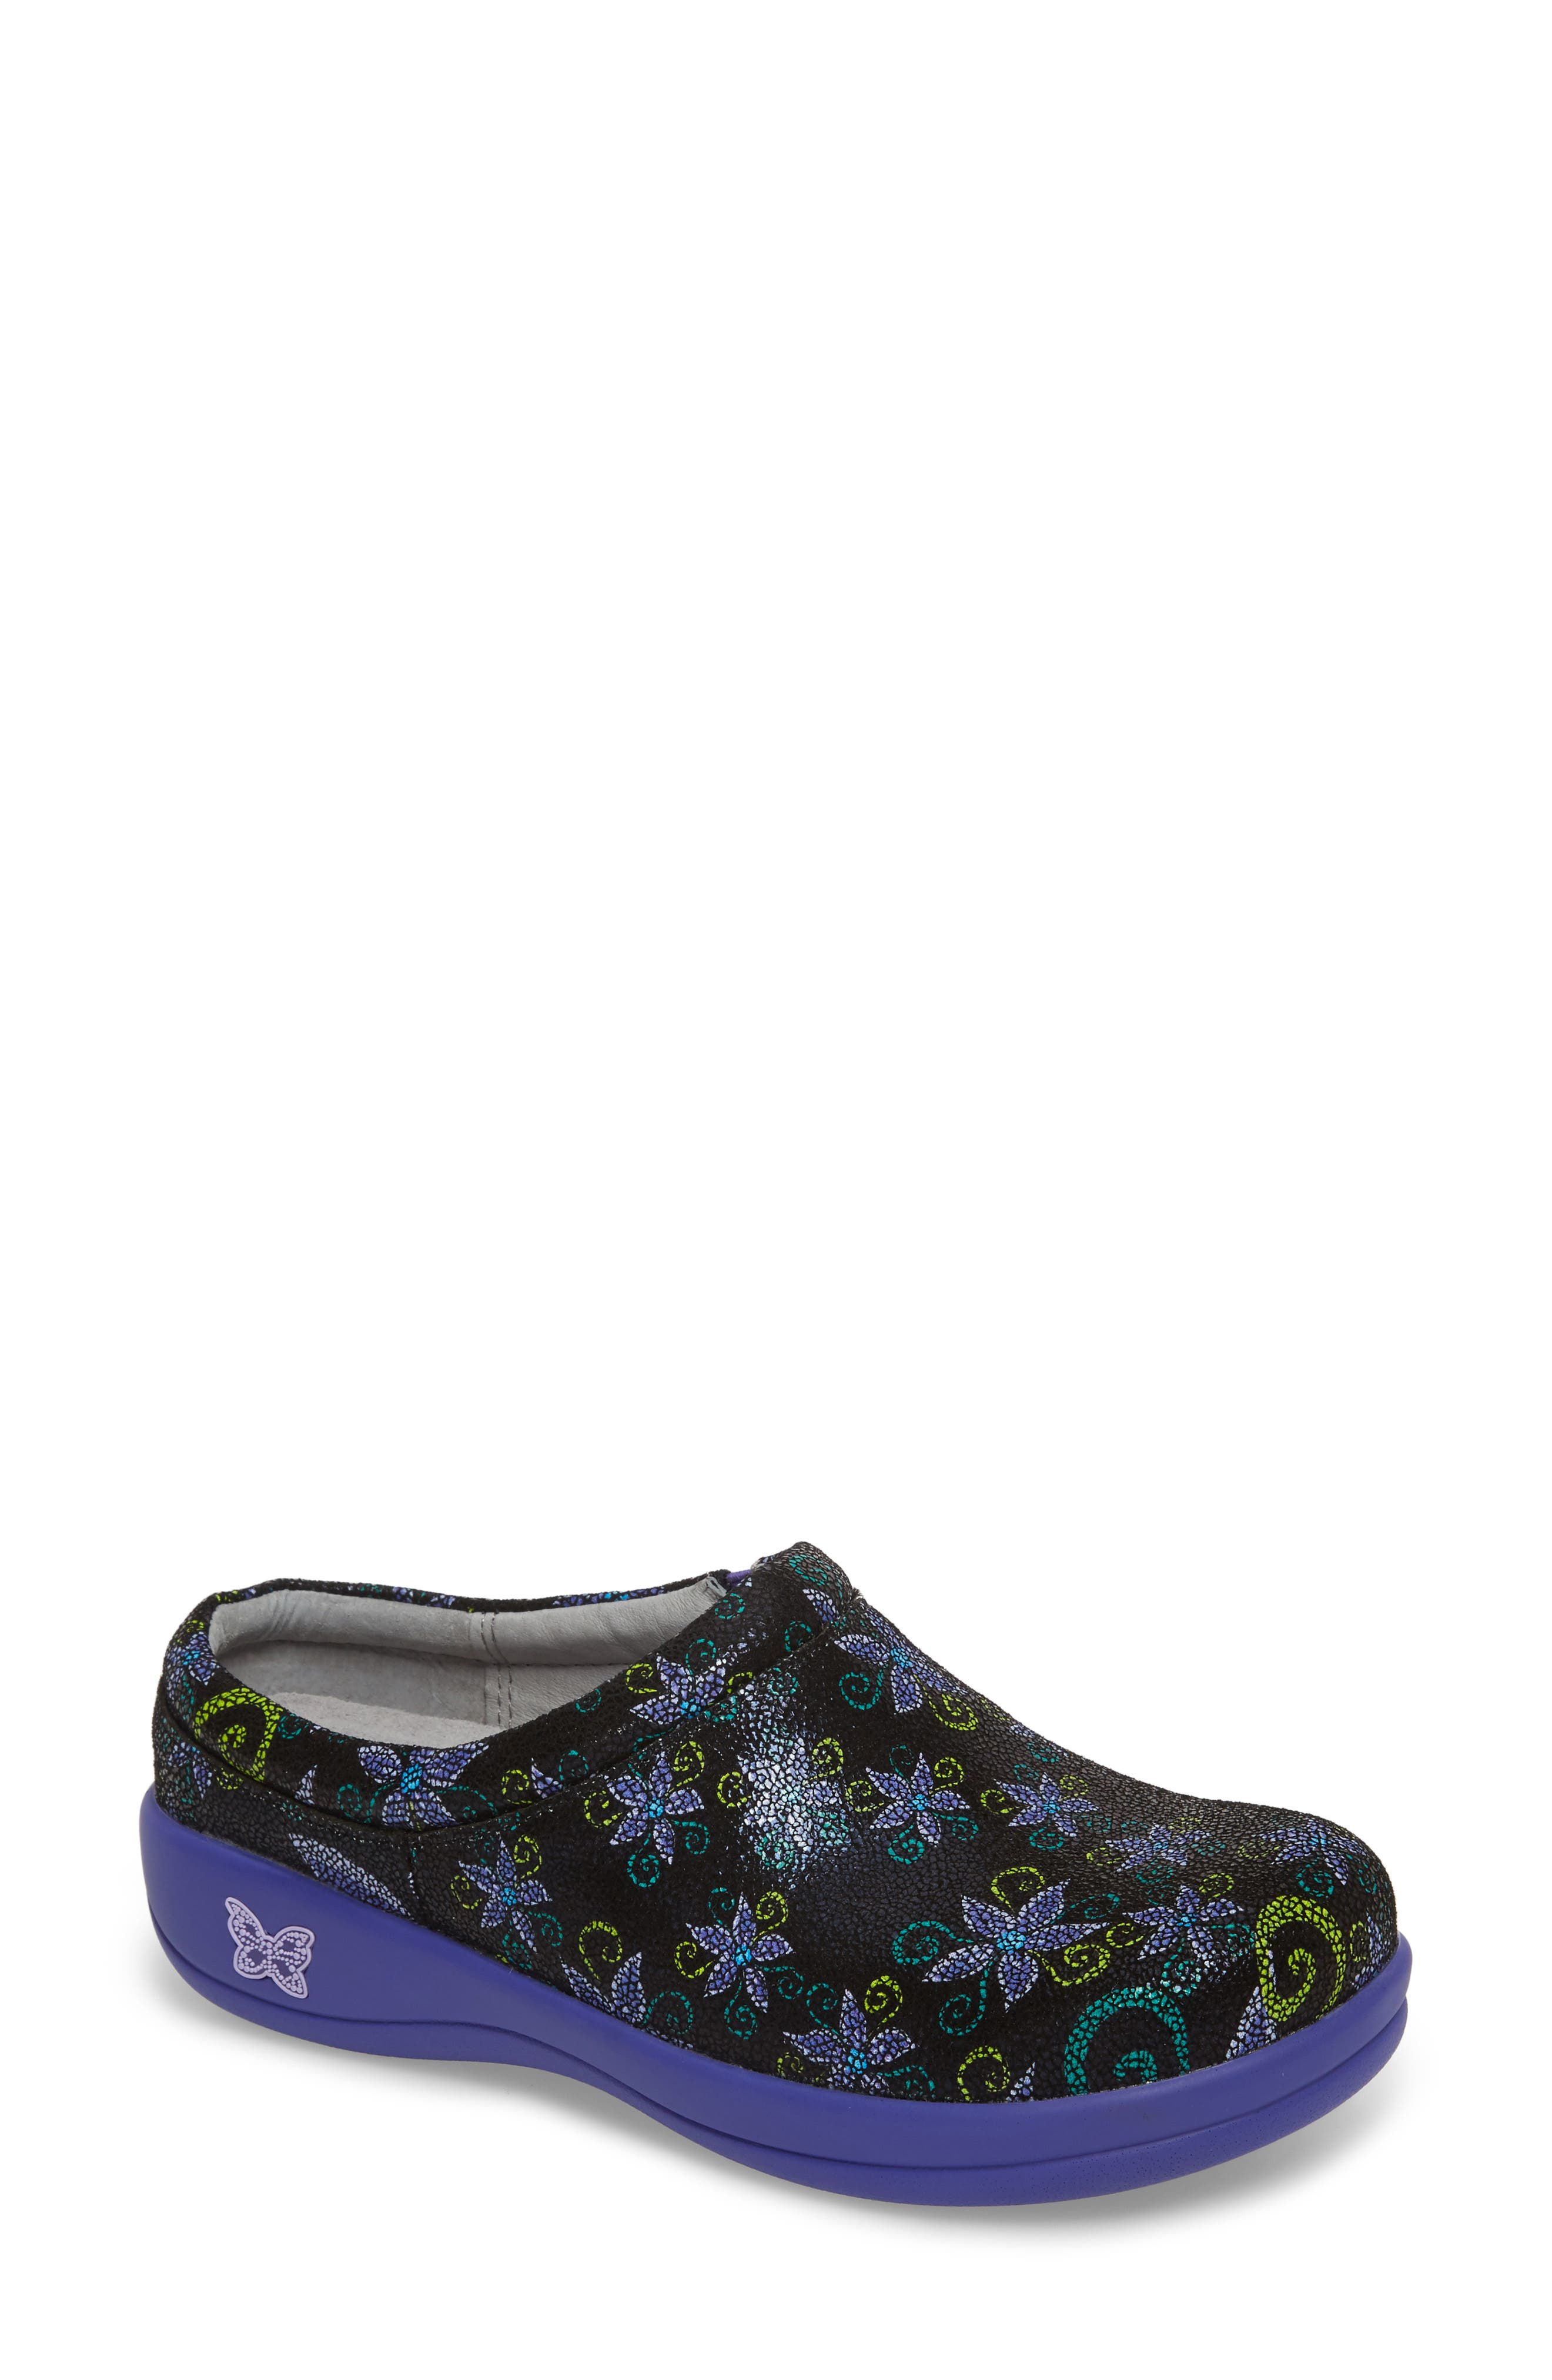 'Kayla' Clog,                             Main thumbnail 1, color,                             Wild Flower Leather